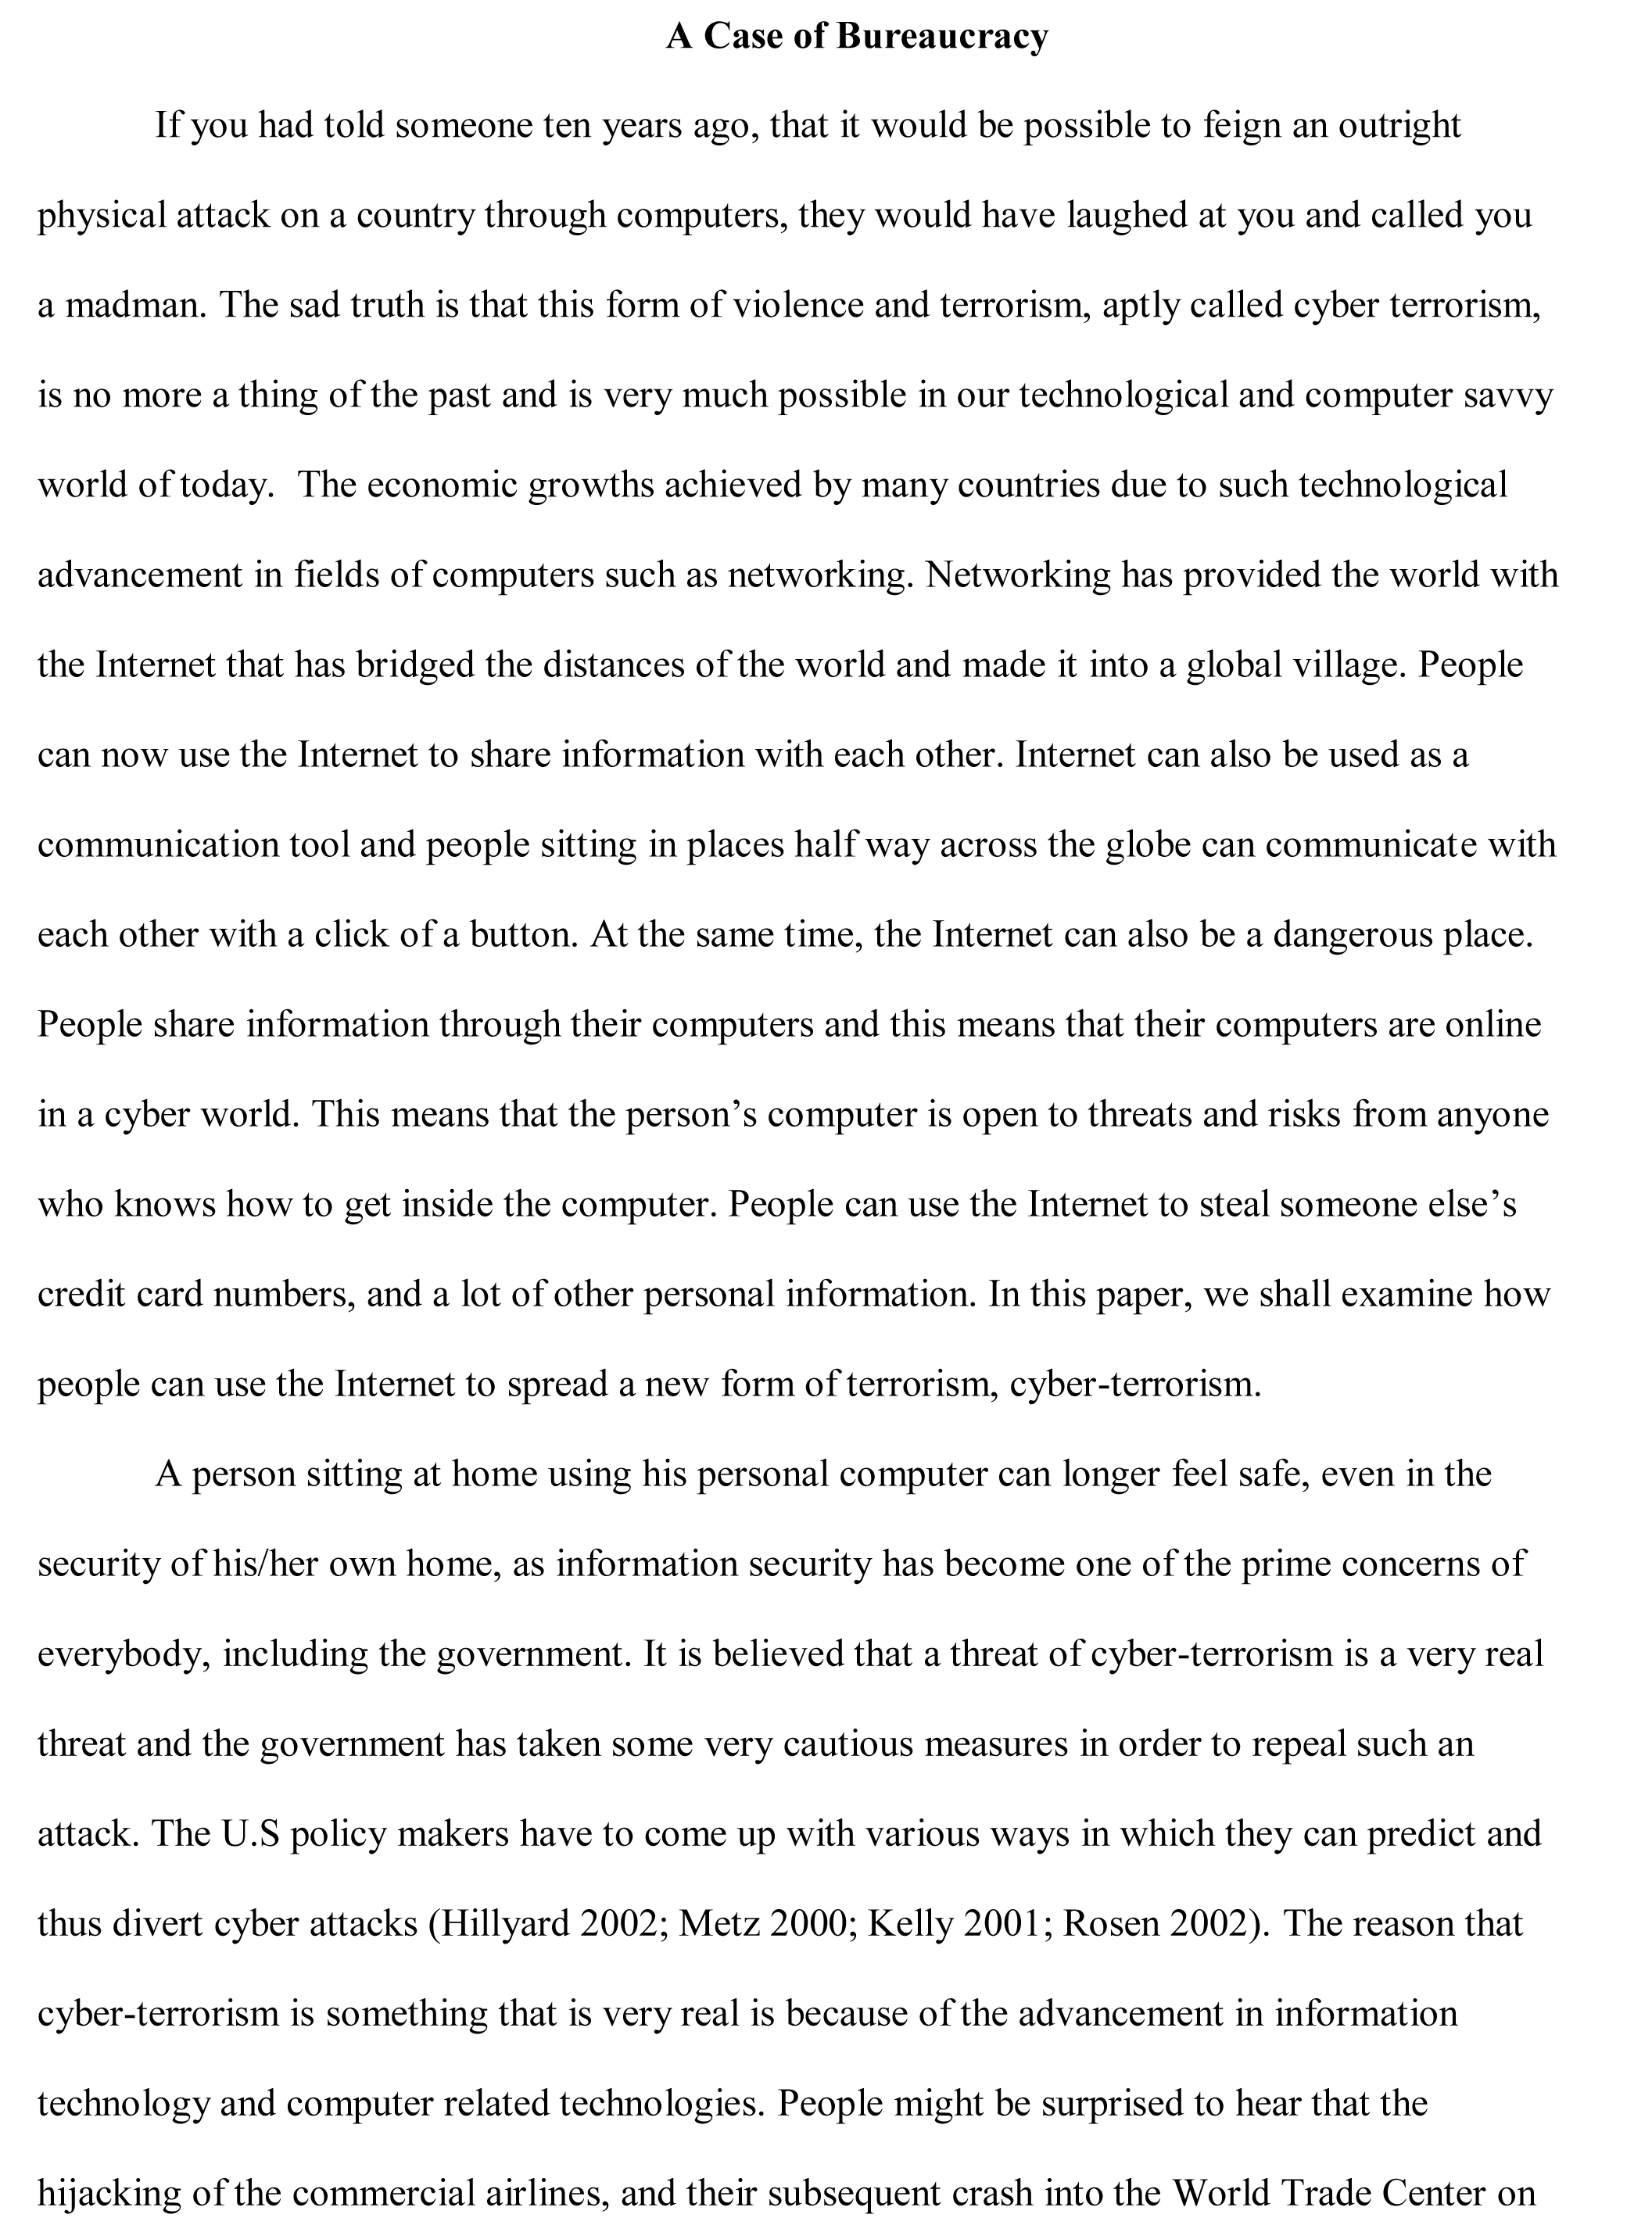 021 Argument Research Paper Topics For College Rsearch Free Fearsome Argumentative English Full